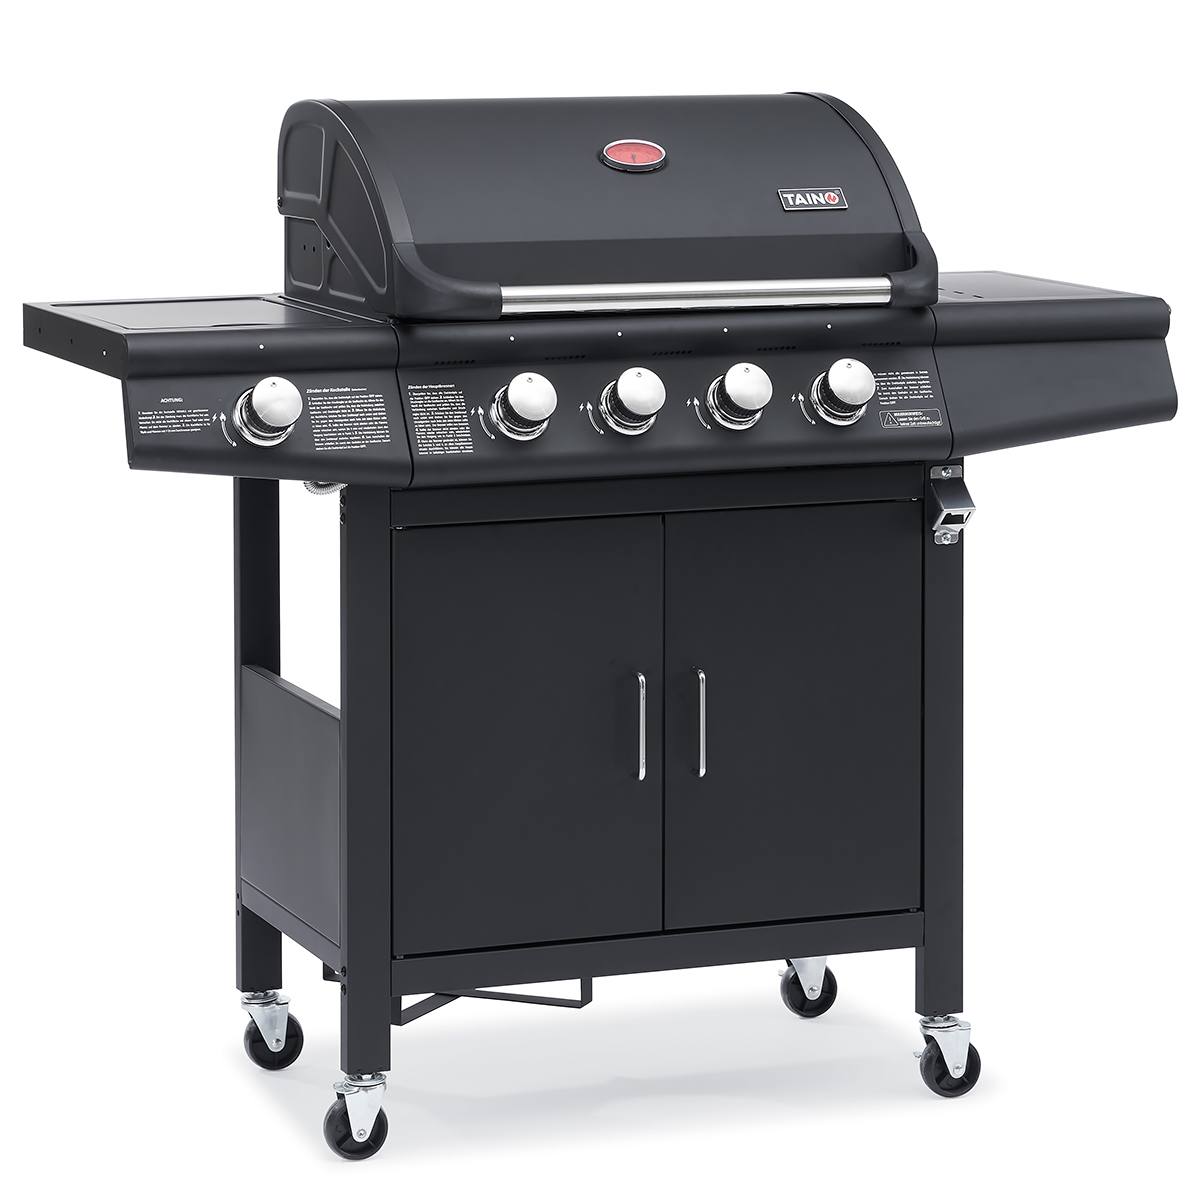 93511 TAINO RED 4+1 Gasgrill schwarz